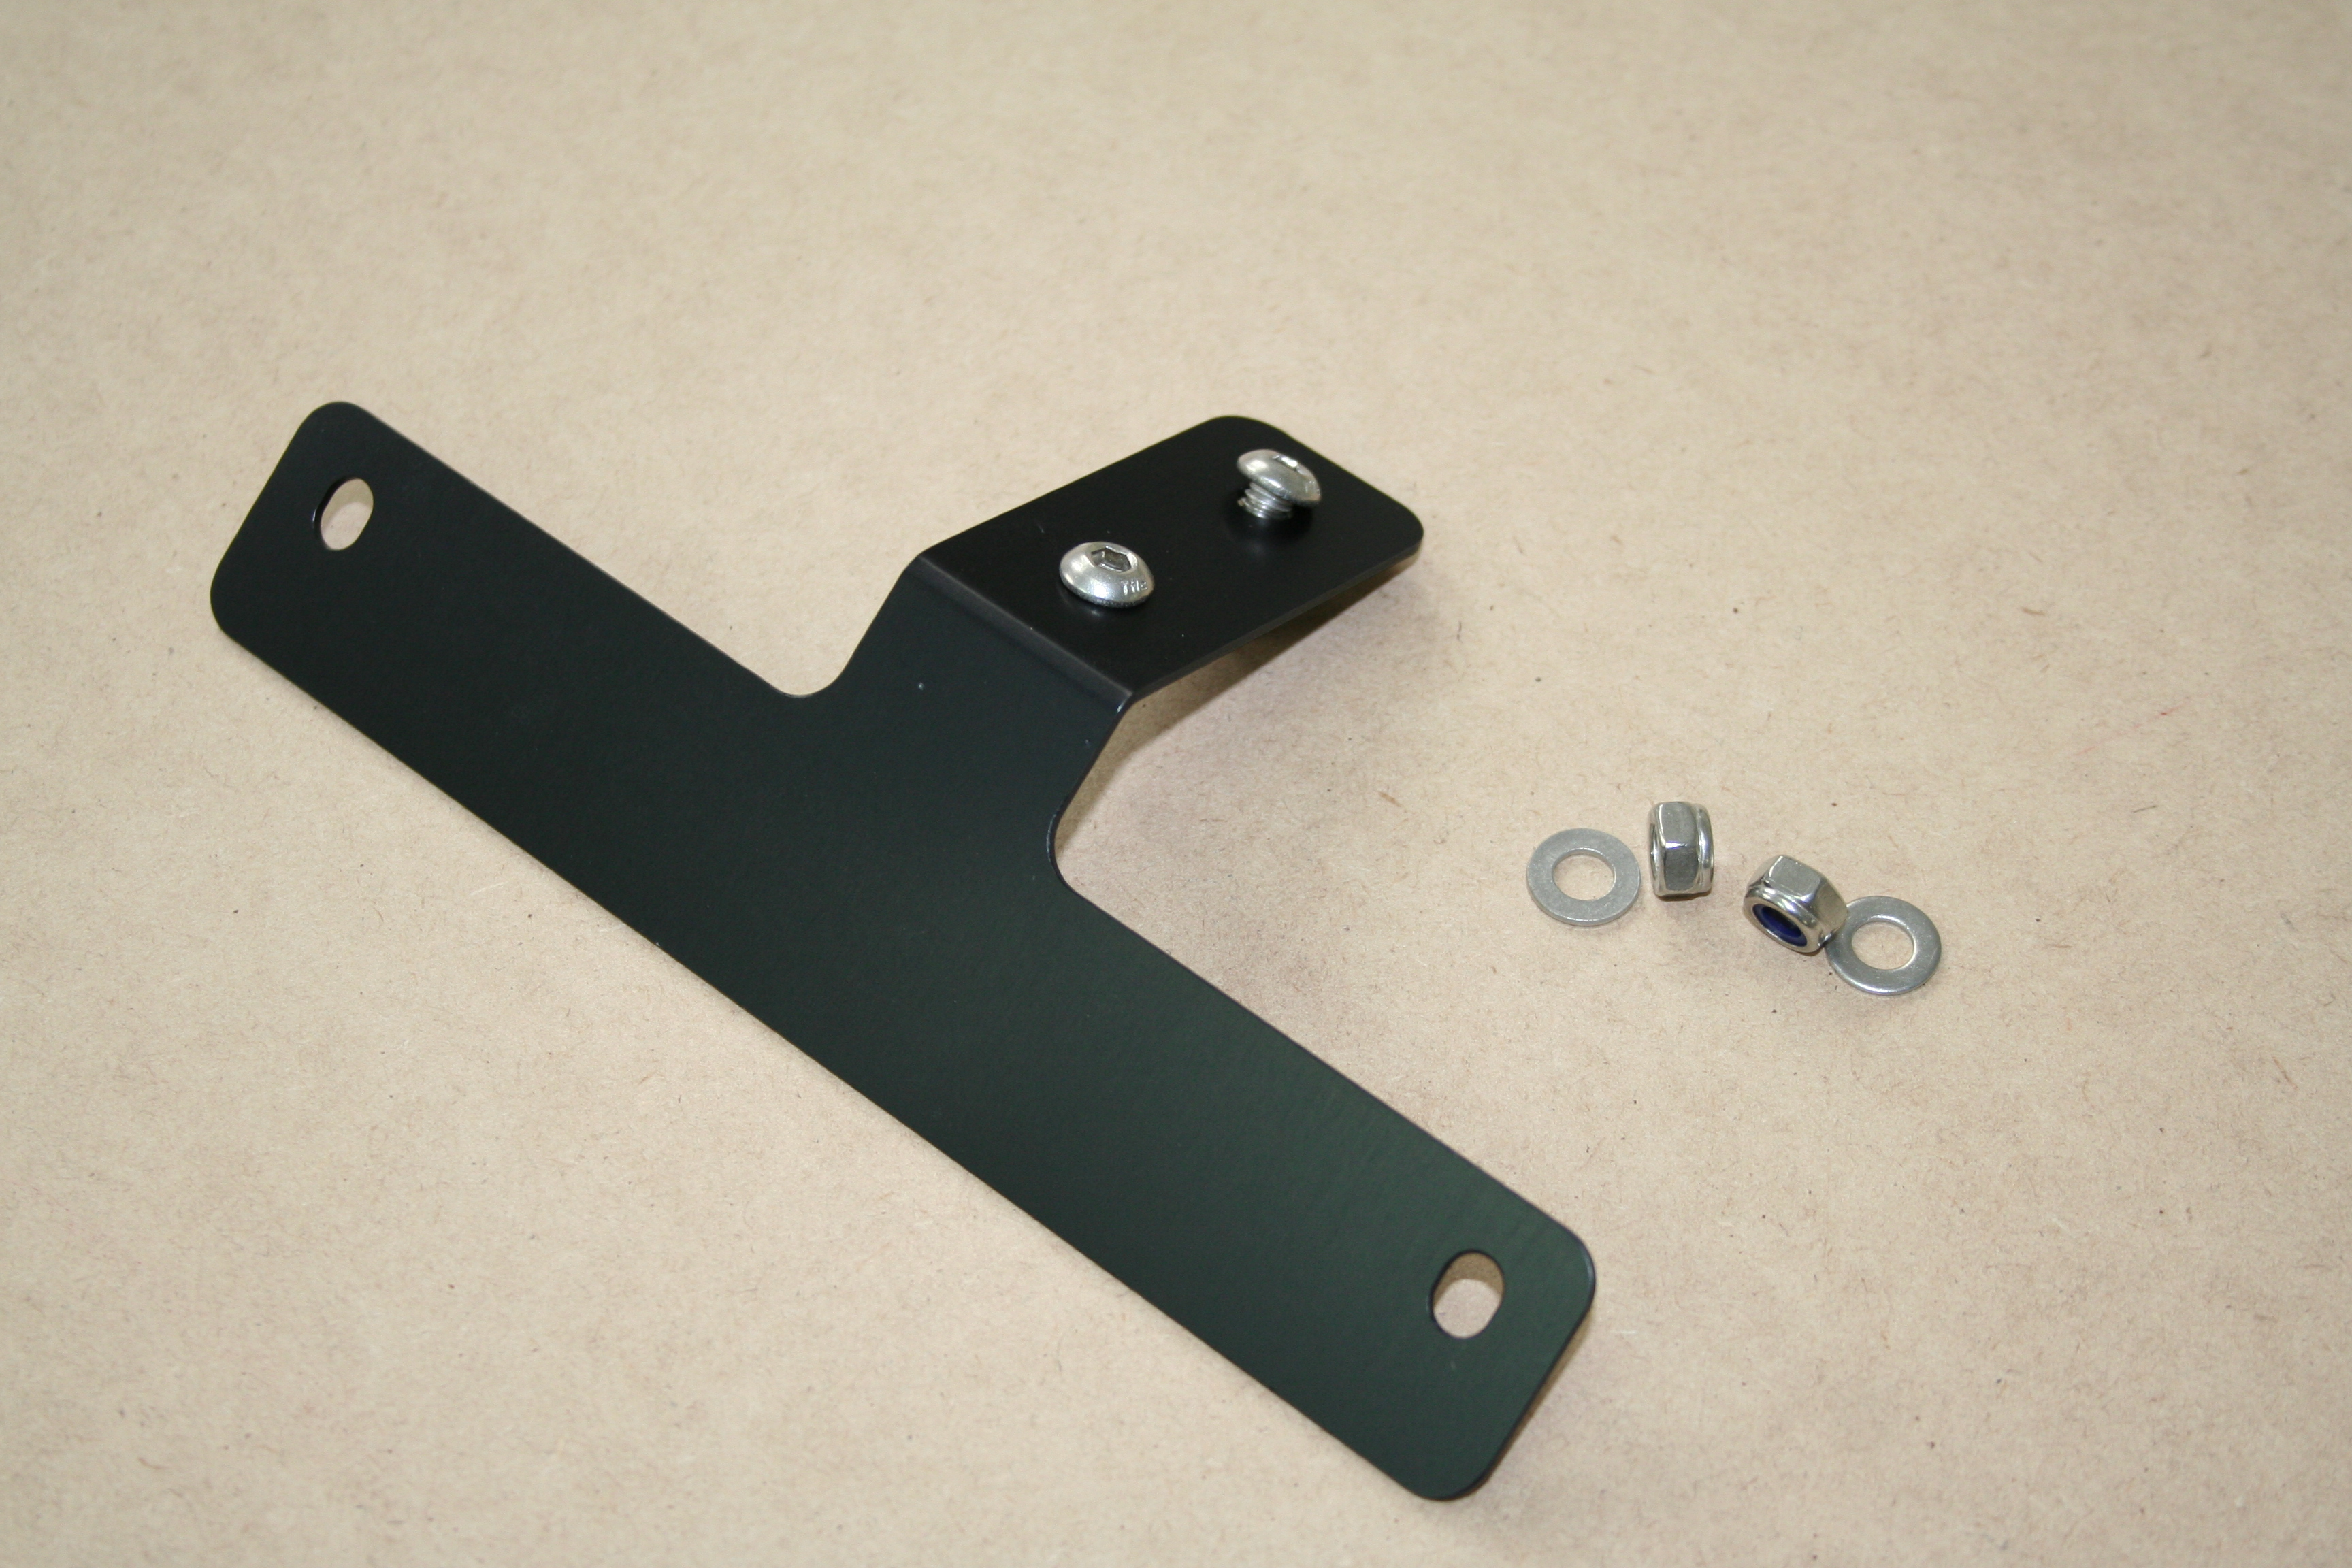 NUMBER PLATE BRACKET $18 & How Much | TRX850 Cafe Racer